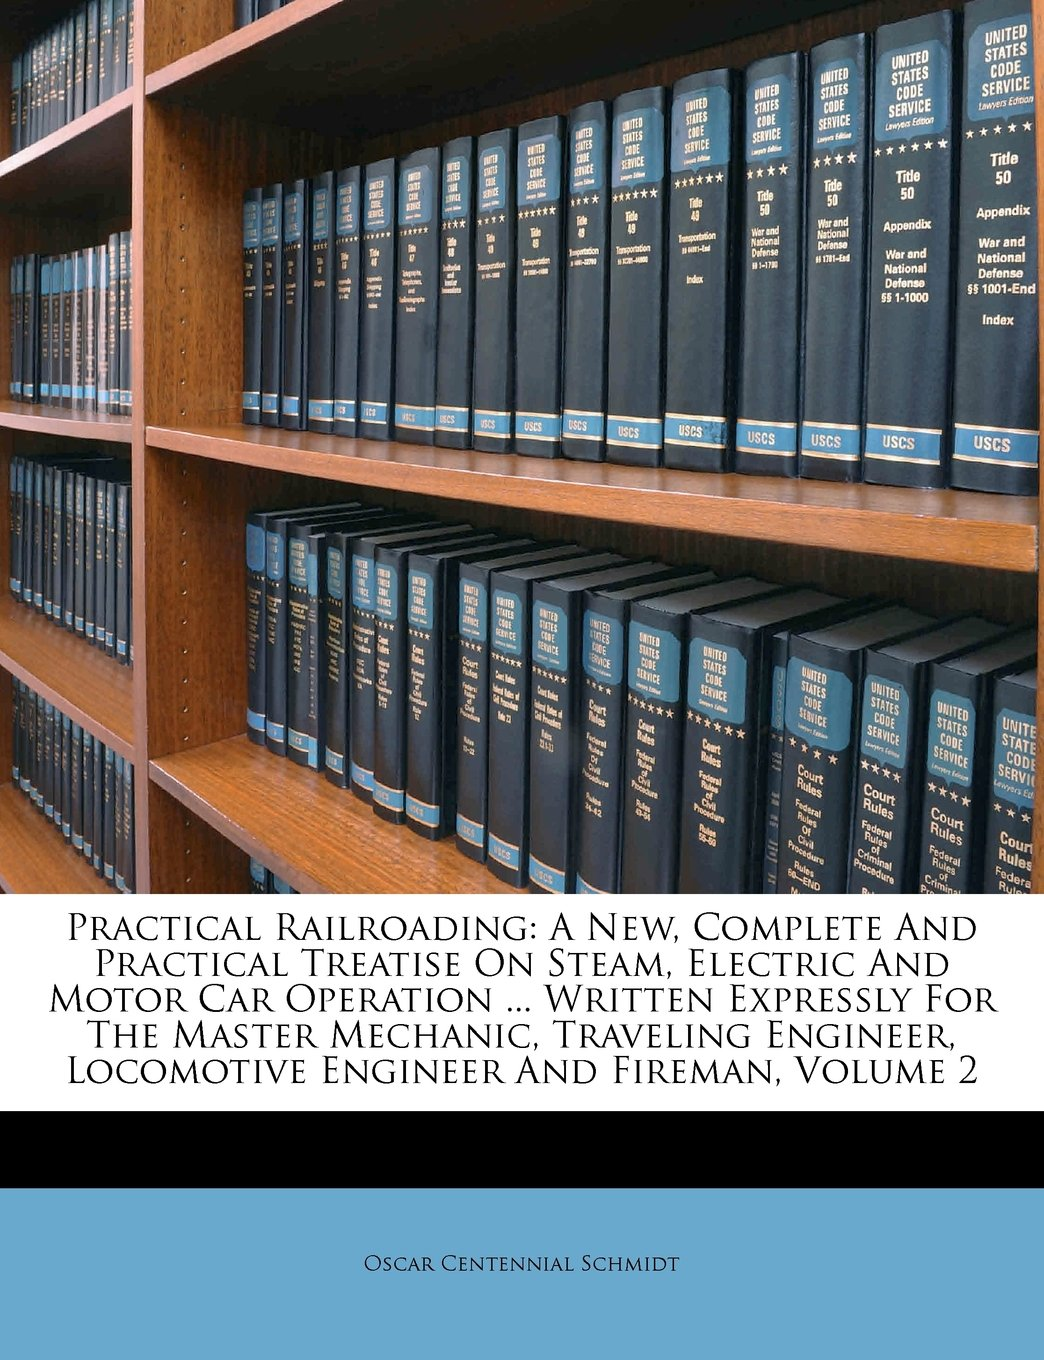 Download Practical Railroading: A New, Complete And Practical Treatise On Steam, Electric And Motor Car Operation ... Written Expressly For The Master ... Locomotive Engineer And Fireman, Volume 2 PDF